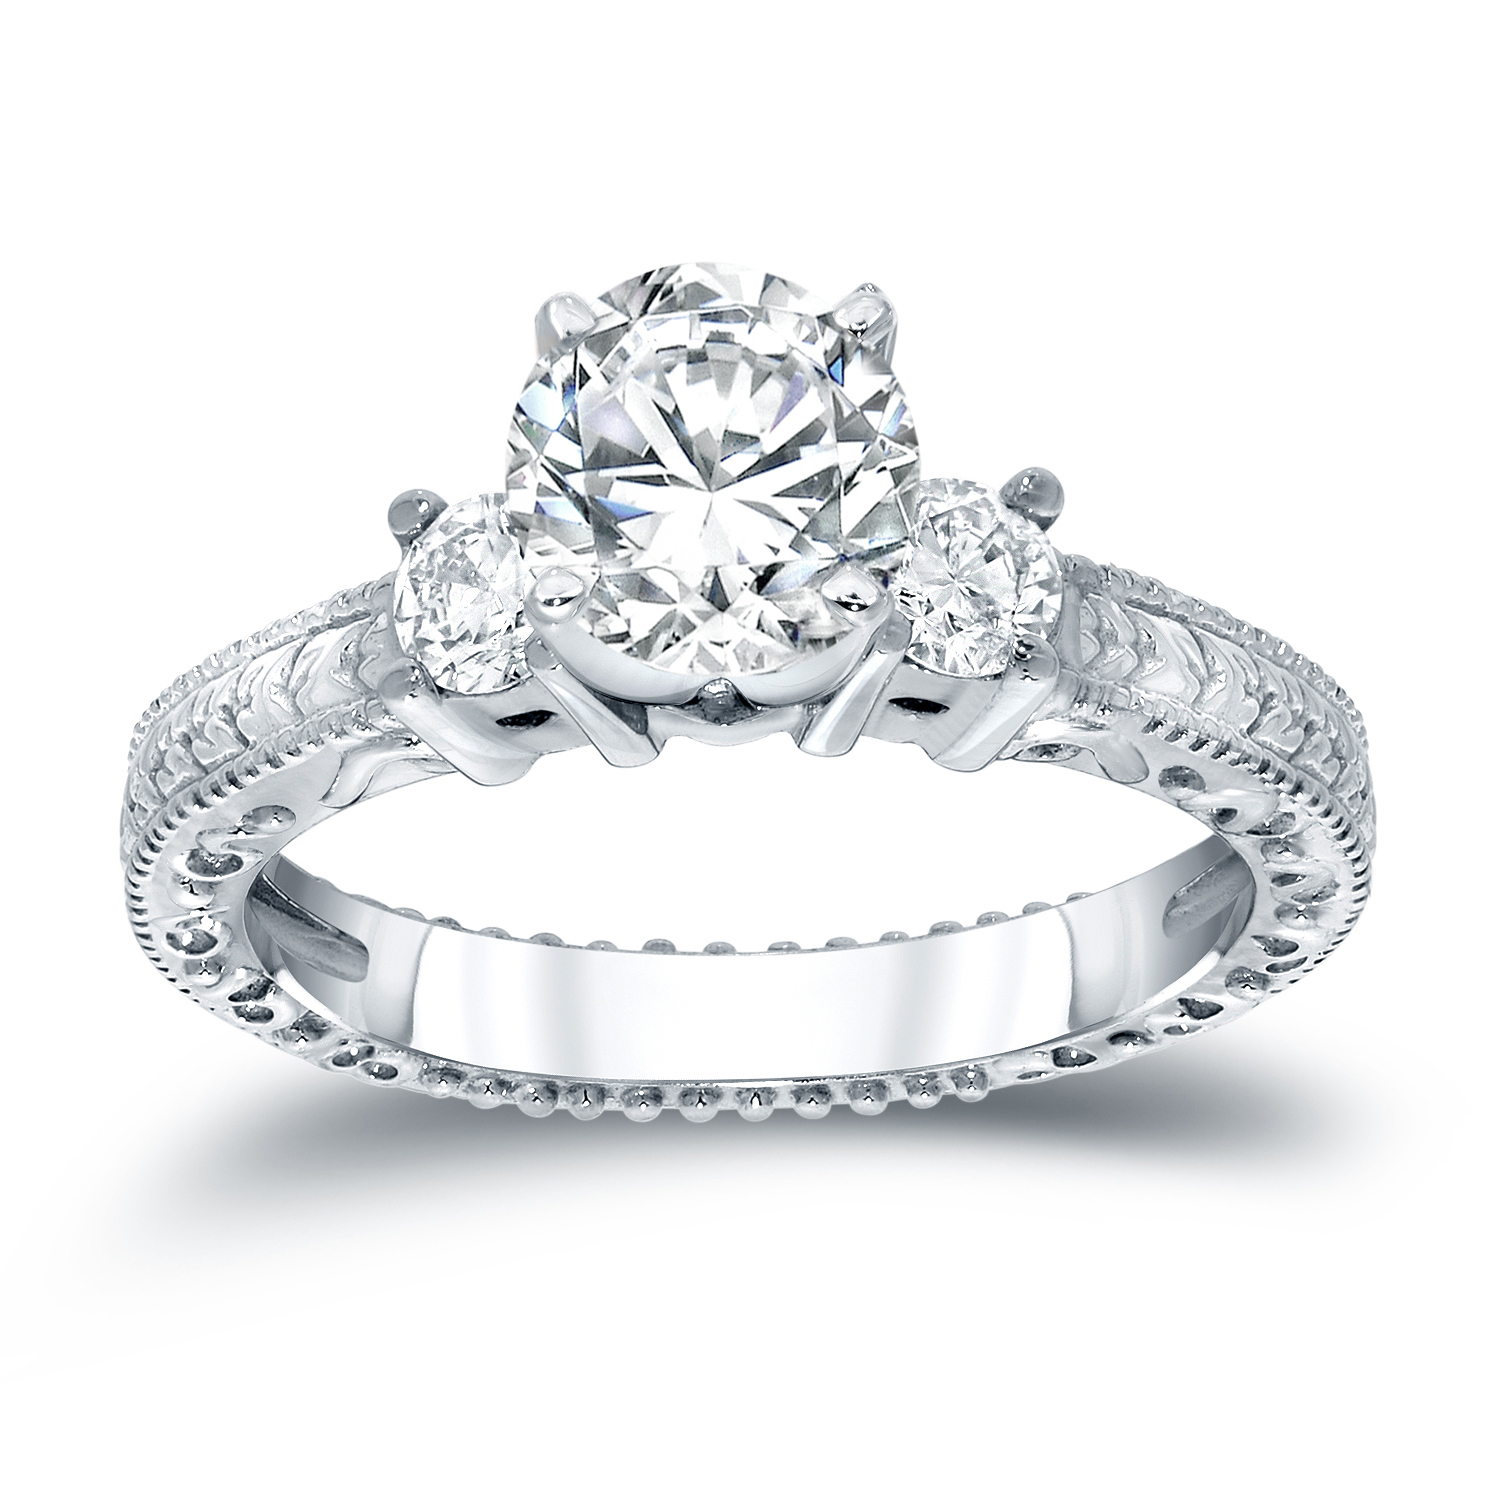 MADELYN Three Stone Engagement Ring In 14K White Gold